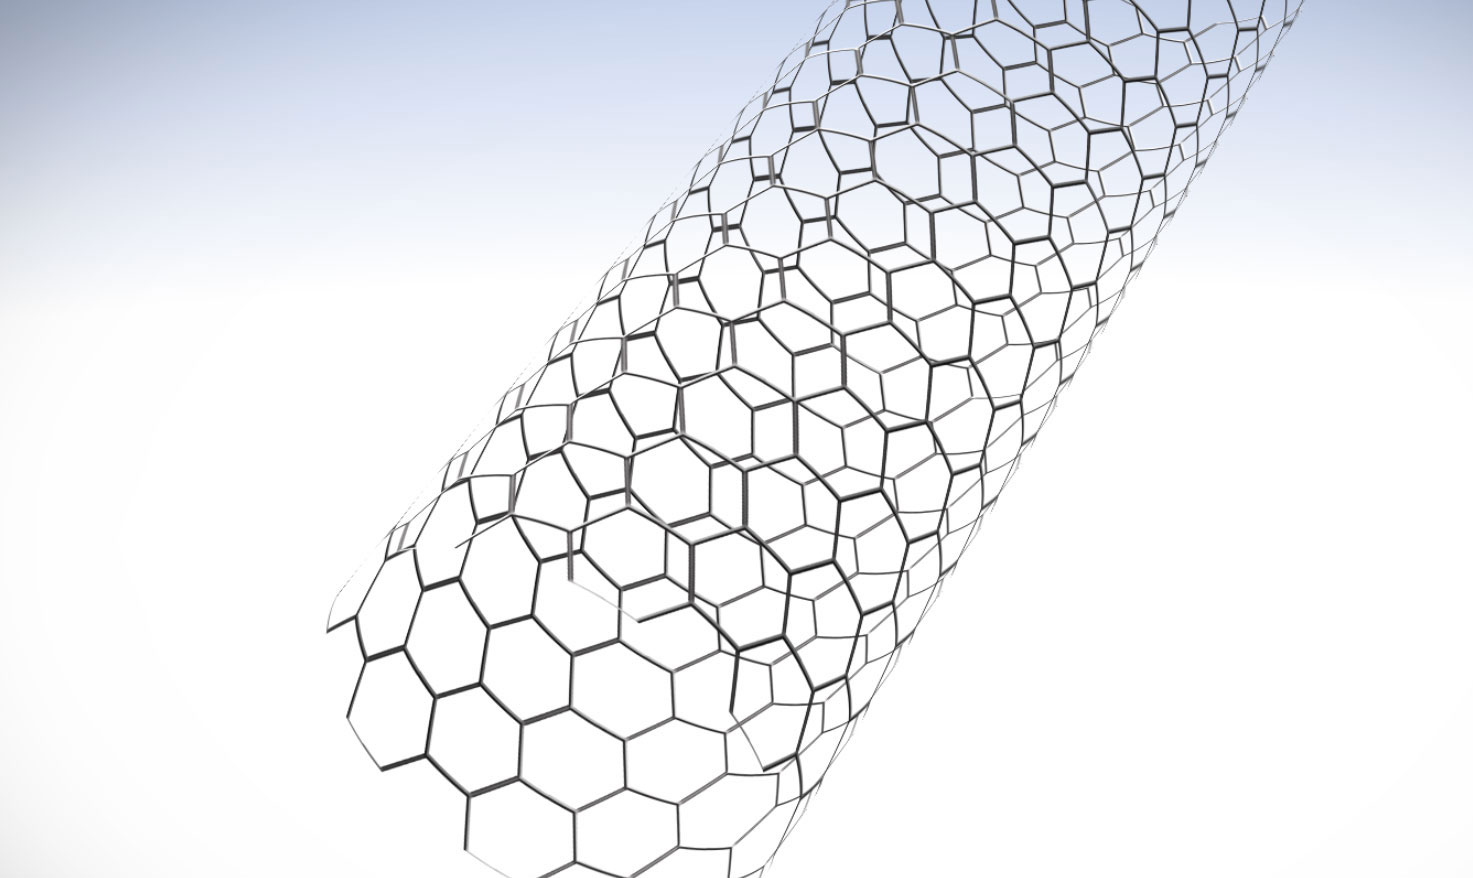 A carbon nanotube (CNT) is a lattice of carbon atoms rolled into a cylindrical shape. Each one is about 10 billionths of a meter wide -- about 10,000 times thinner than a human hair.